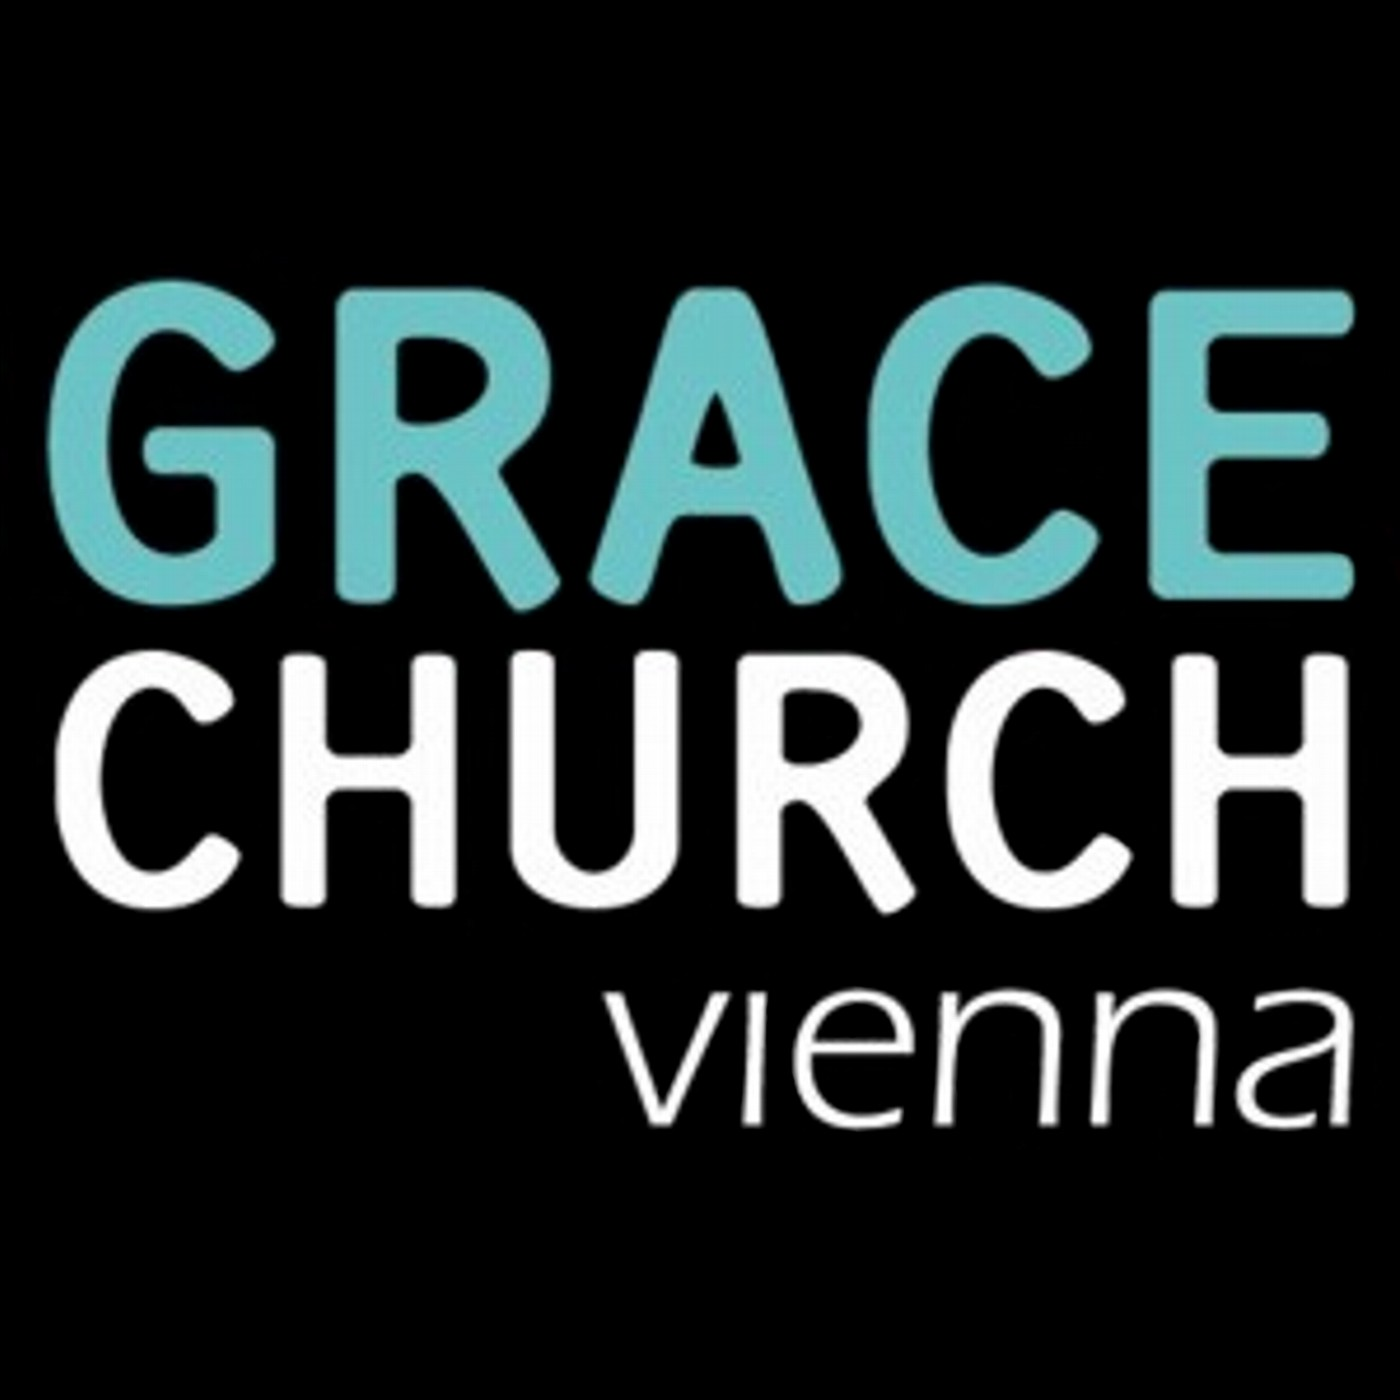 Grace Church vienna